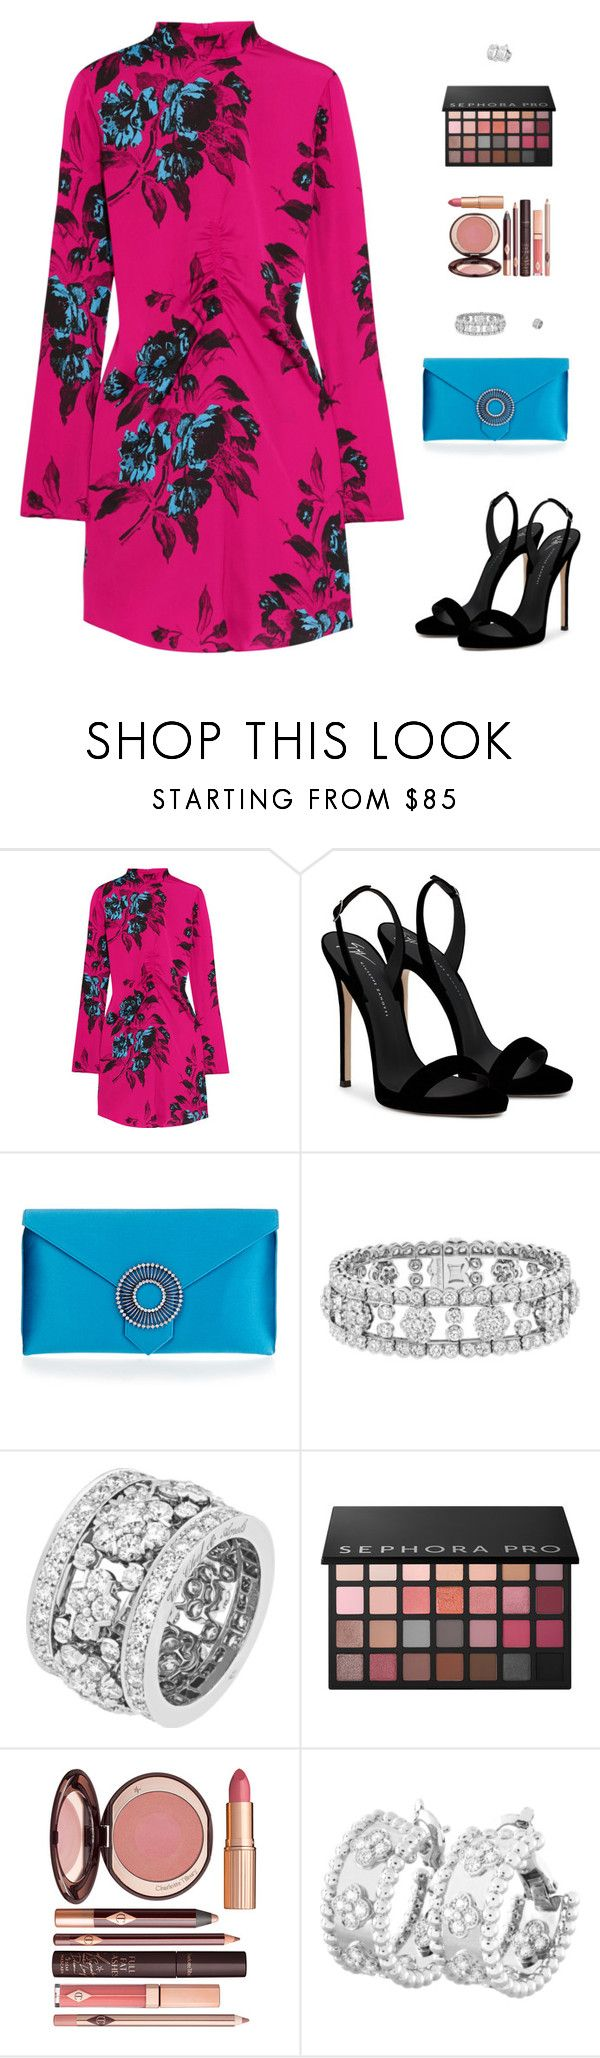 """Untitled #5266"" by mdmsb on Polyvore featuring McQ by Alexander McQueen, Giuseppe Zanotti, Wilbur & Gussie, Van Cleef & Arpels, Sephora Collection and Charlotte Tilbury"